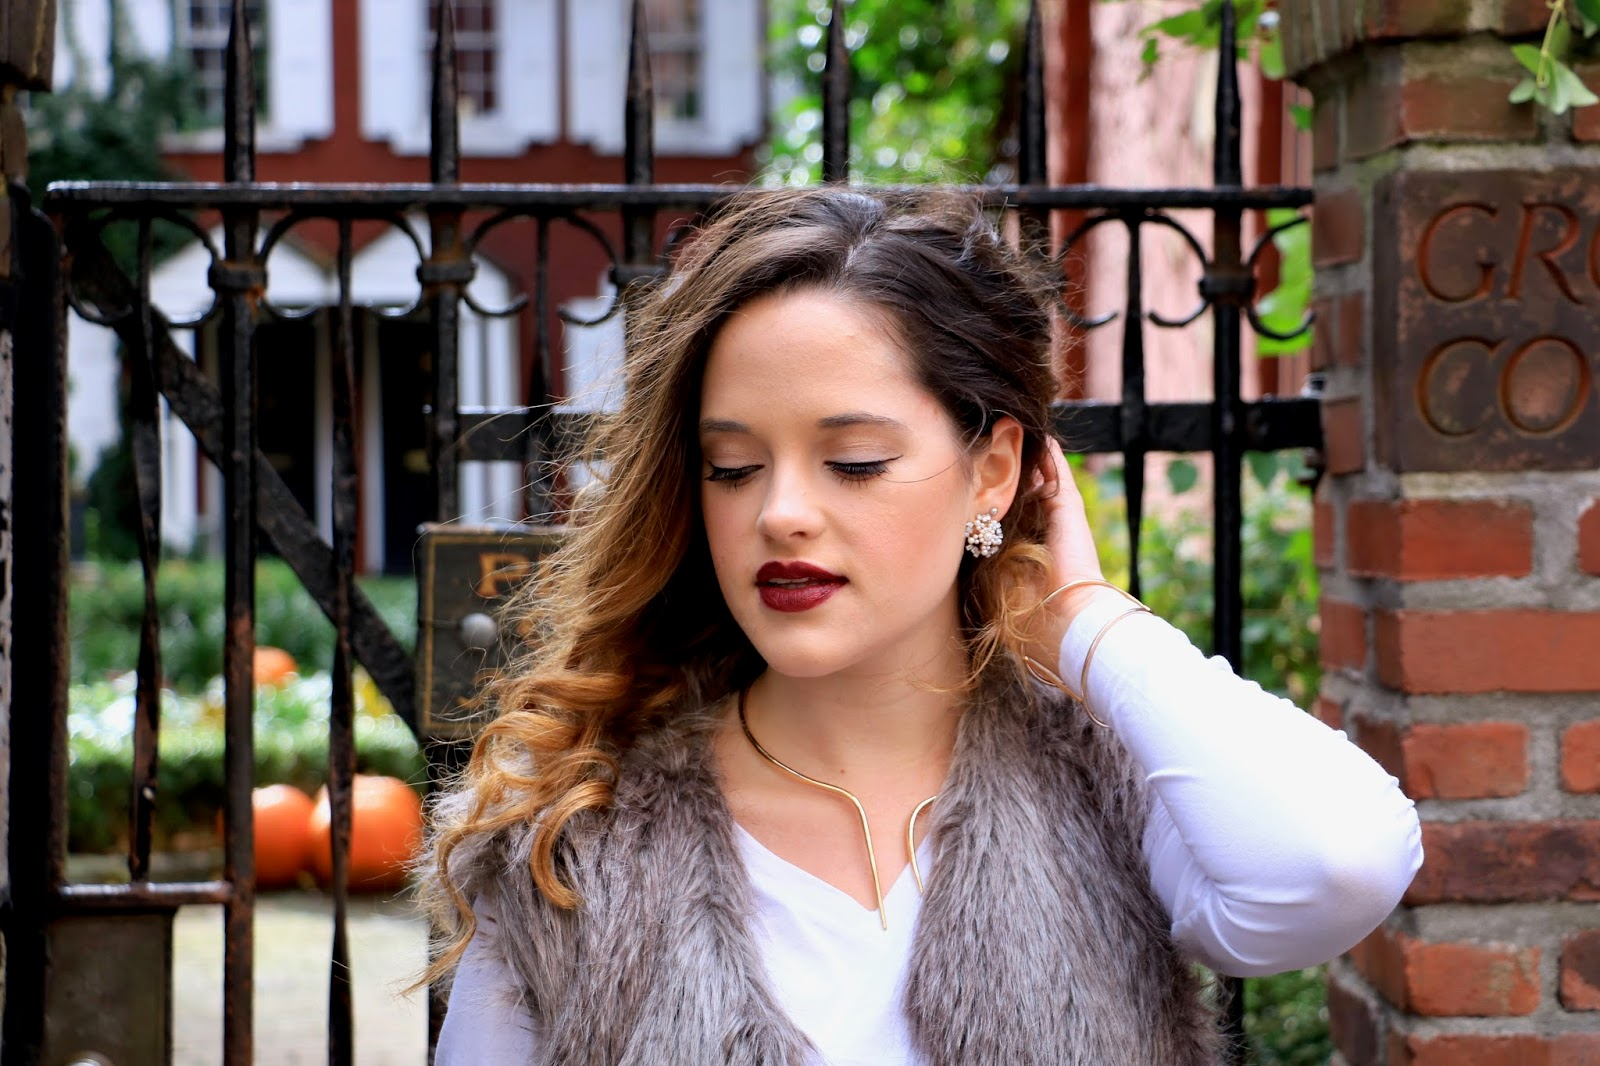 Nyc beauty blogger Kathleen Harper showing how to wear dark lipstick